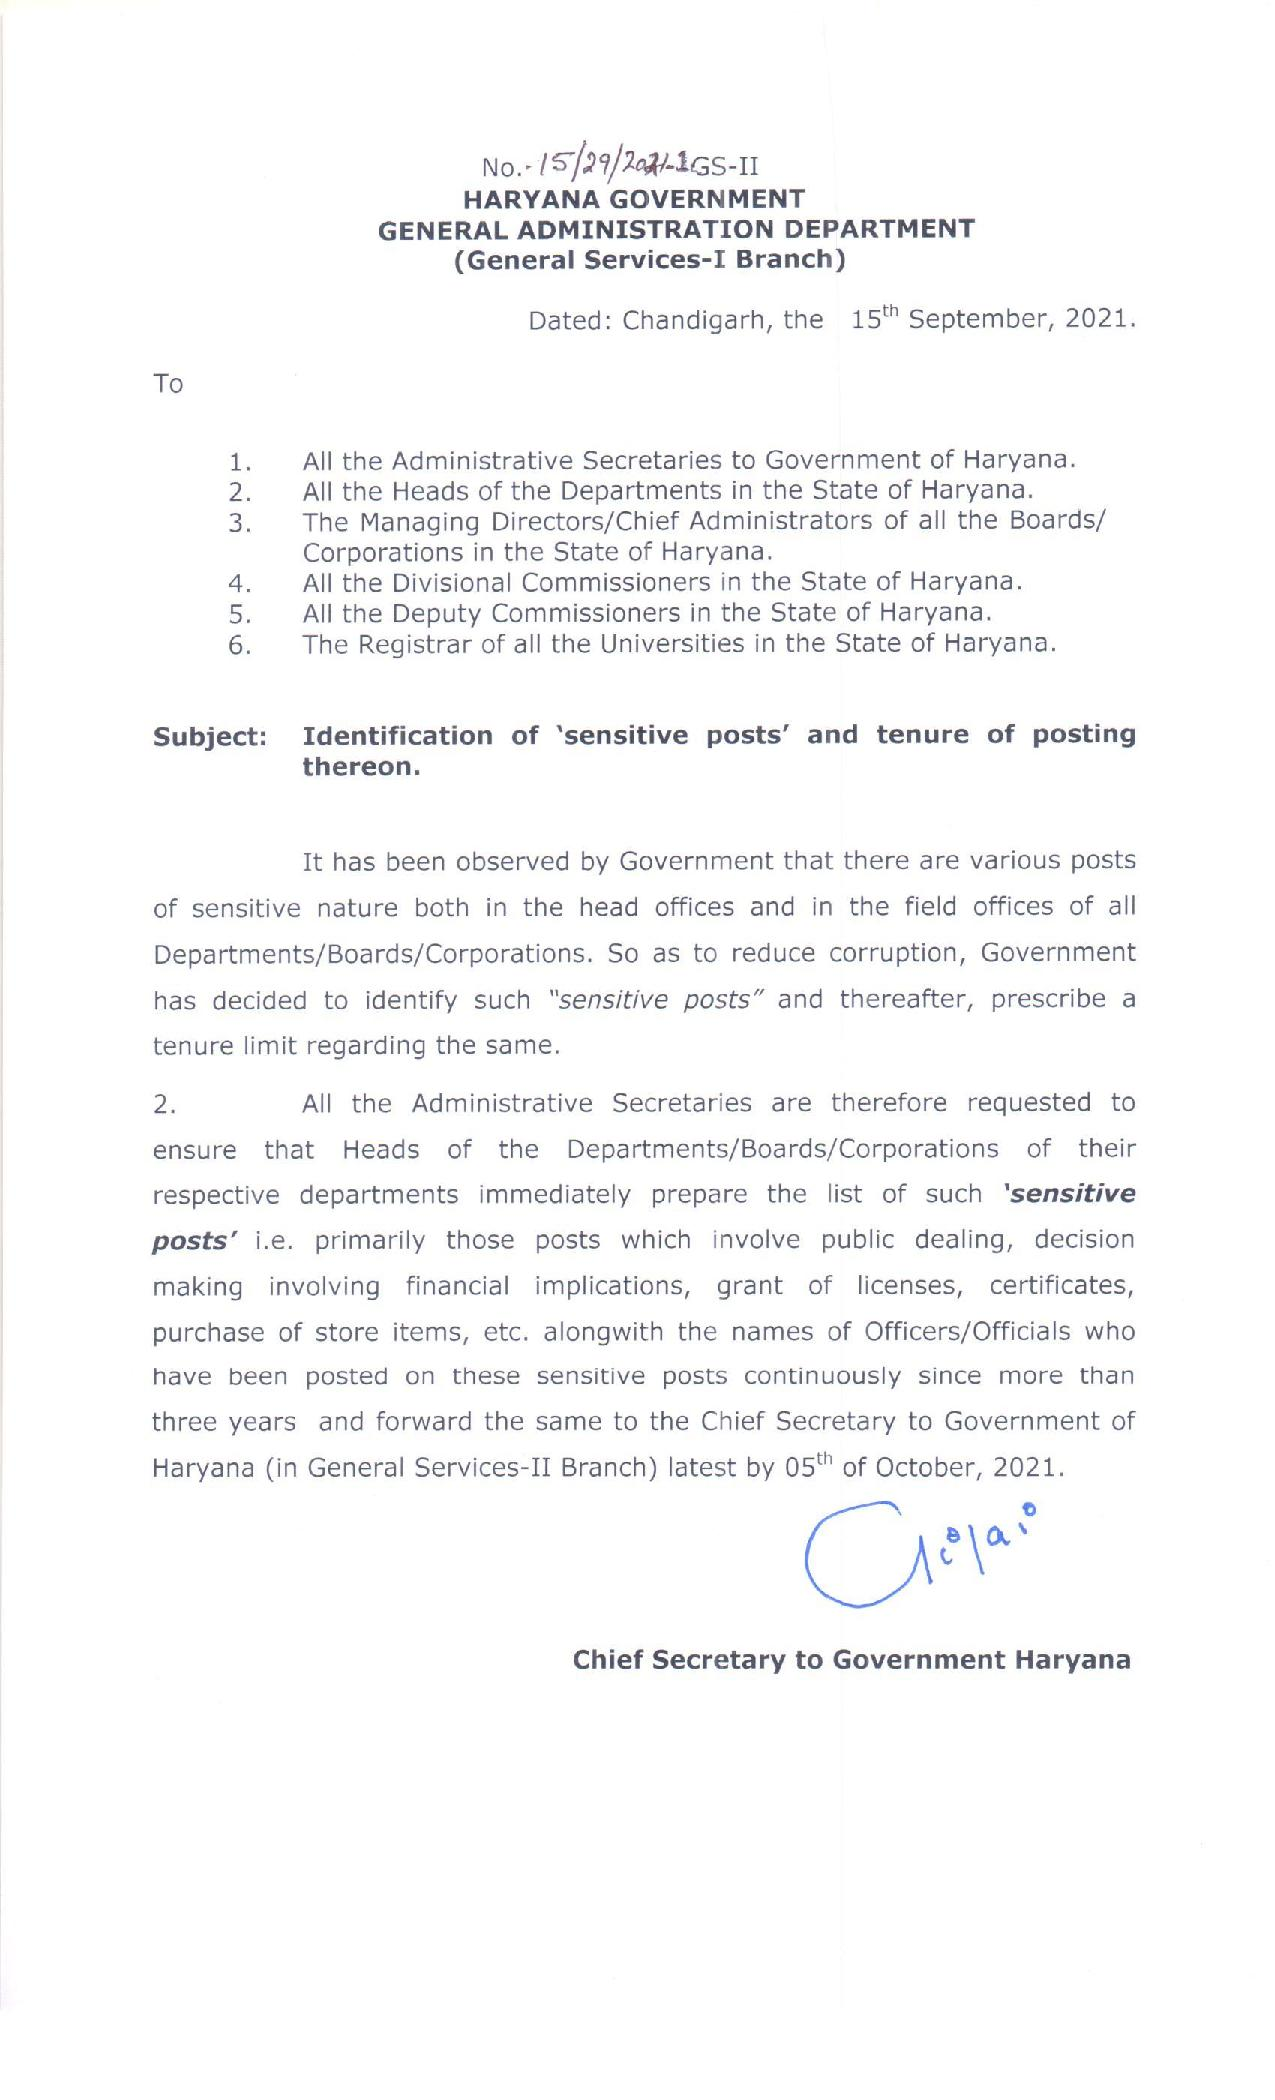 haryana officers posts of sensetive-page-001